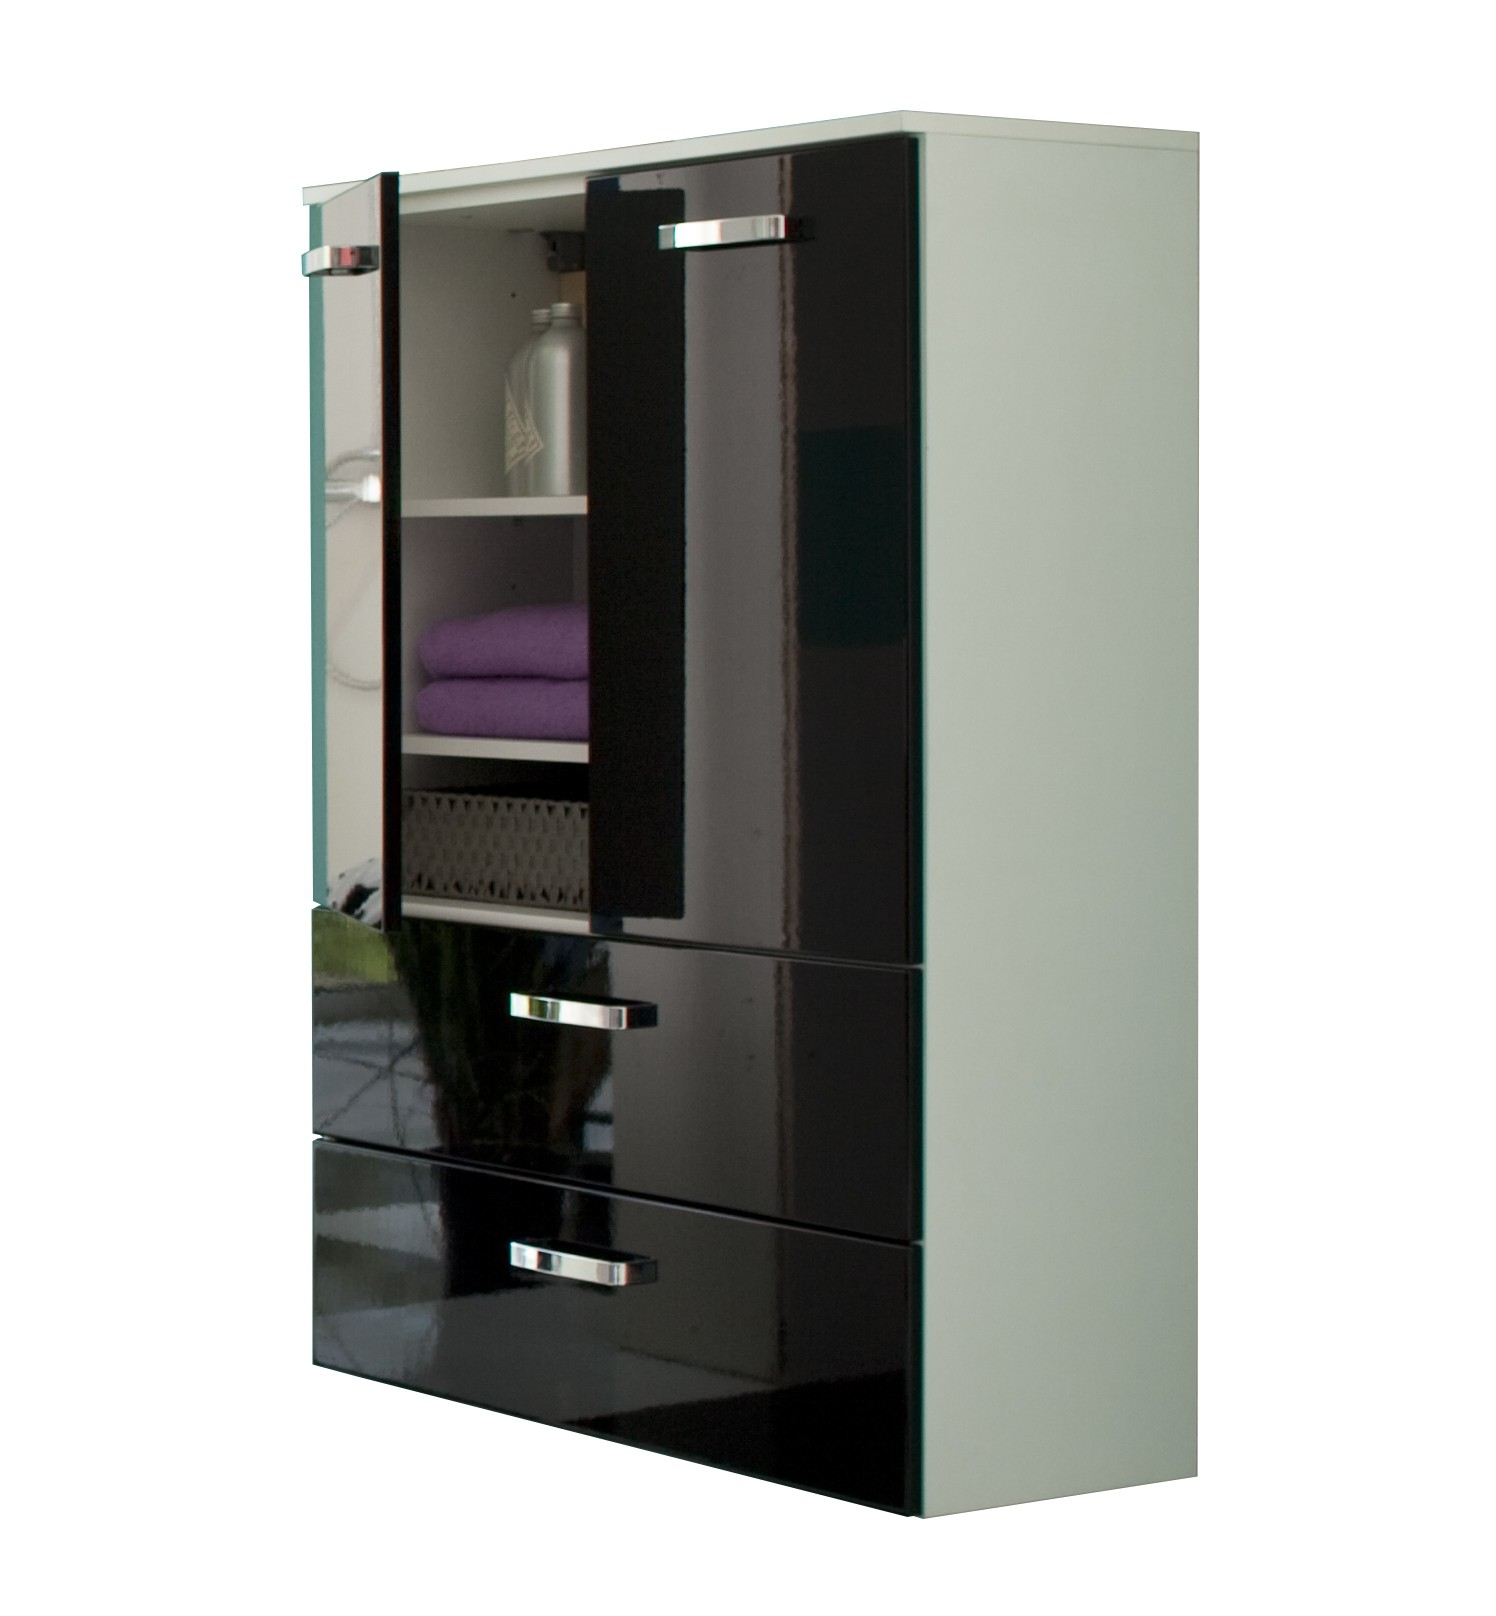 bad midischrank denver 2 t rig 2 schubladen 70 cm breit hochglanz schwarz bad denver. Black Bedroom Furniture Sets. Home Design Ideas